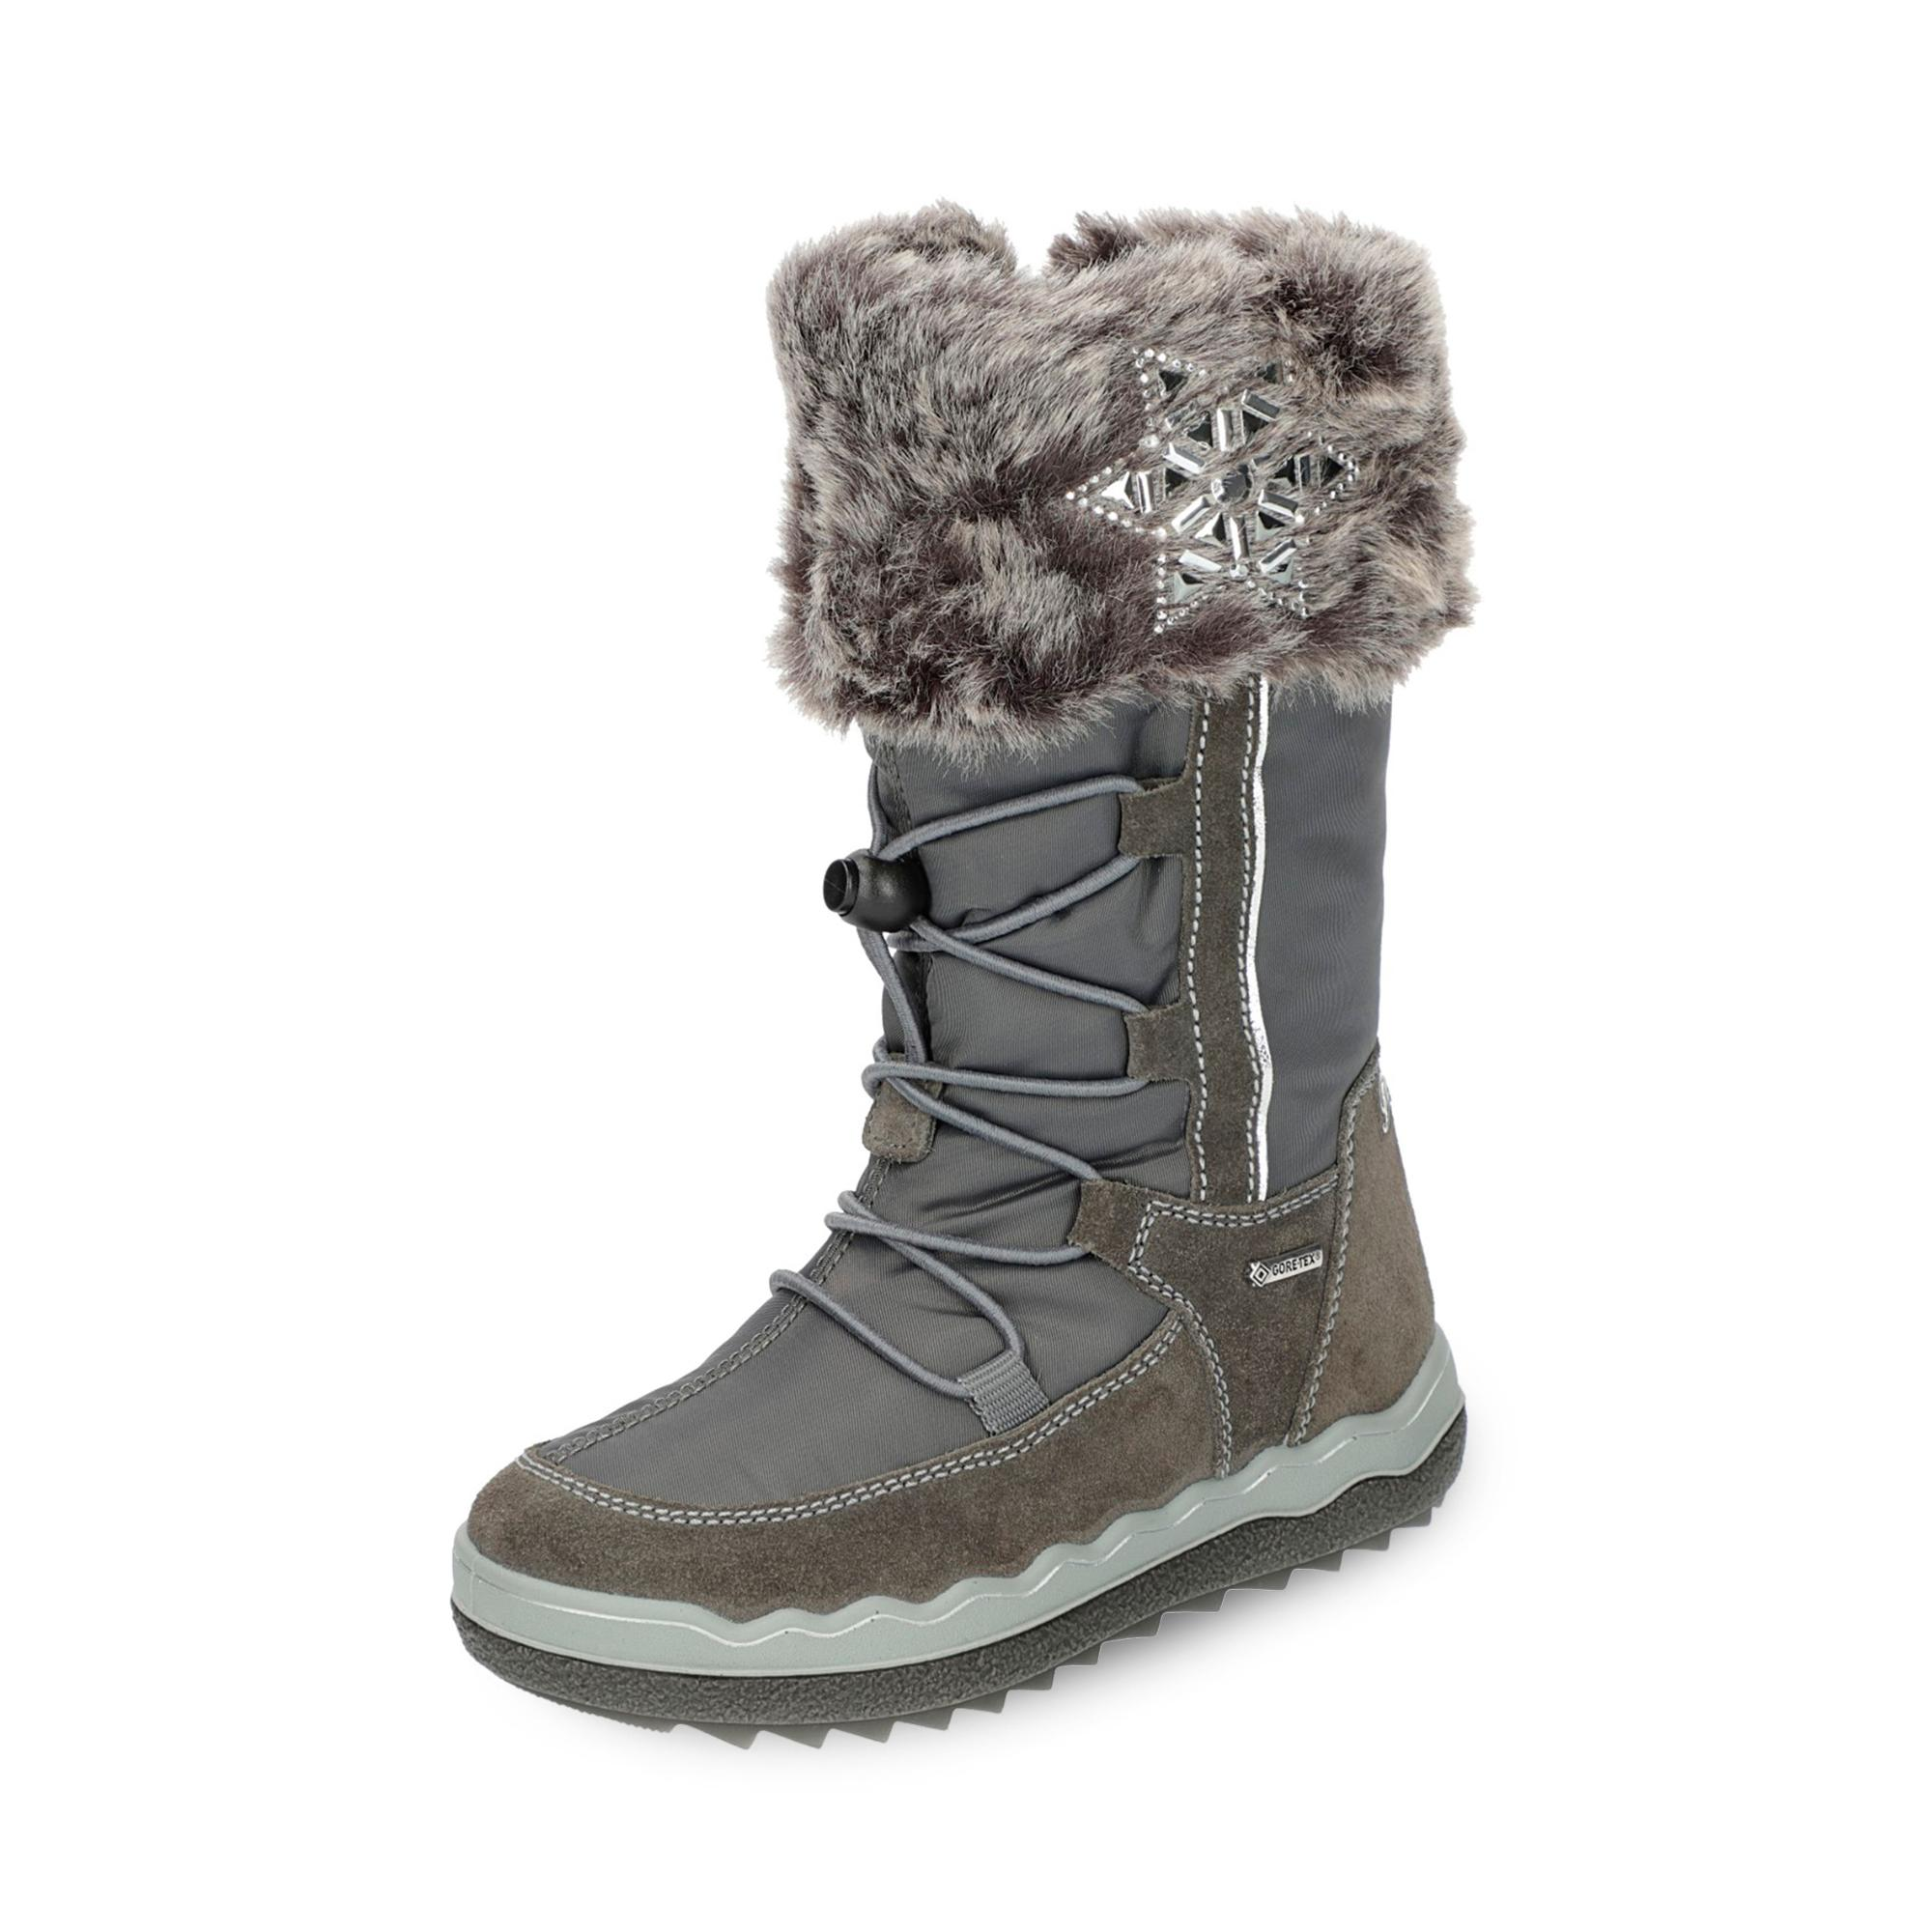 purchase cheap ac2fe efe4a Primigi GORE-TEX® Winterstiefel - anthrazit um 34% reduziert ...